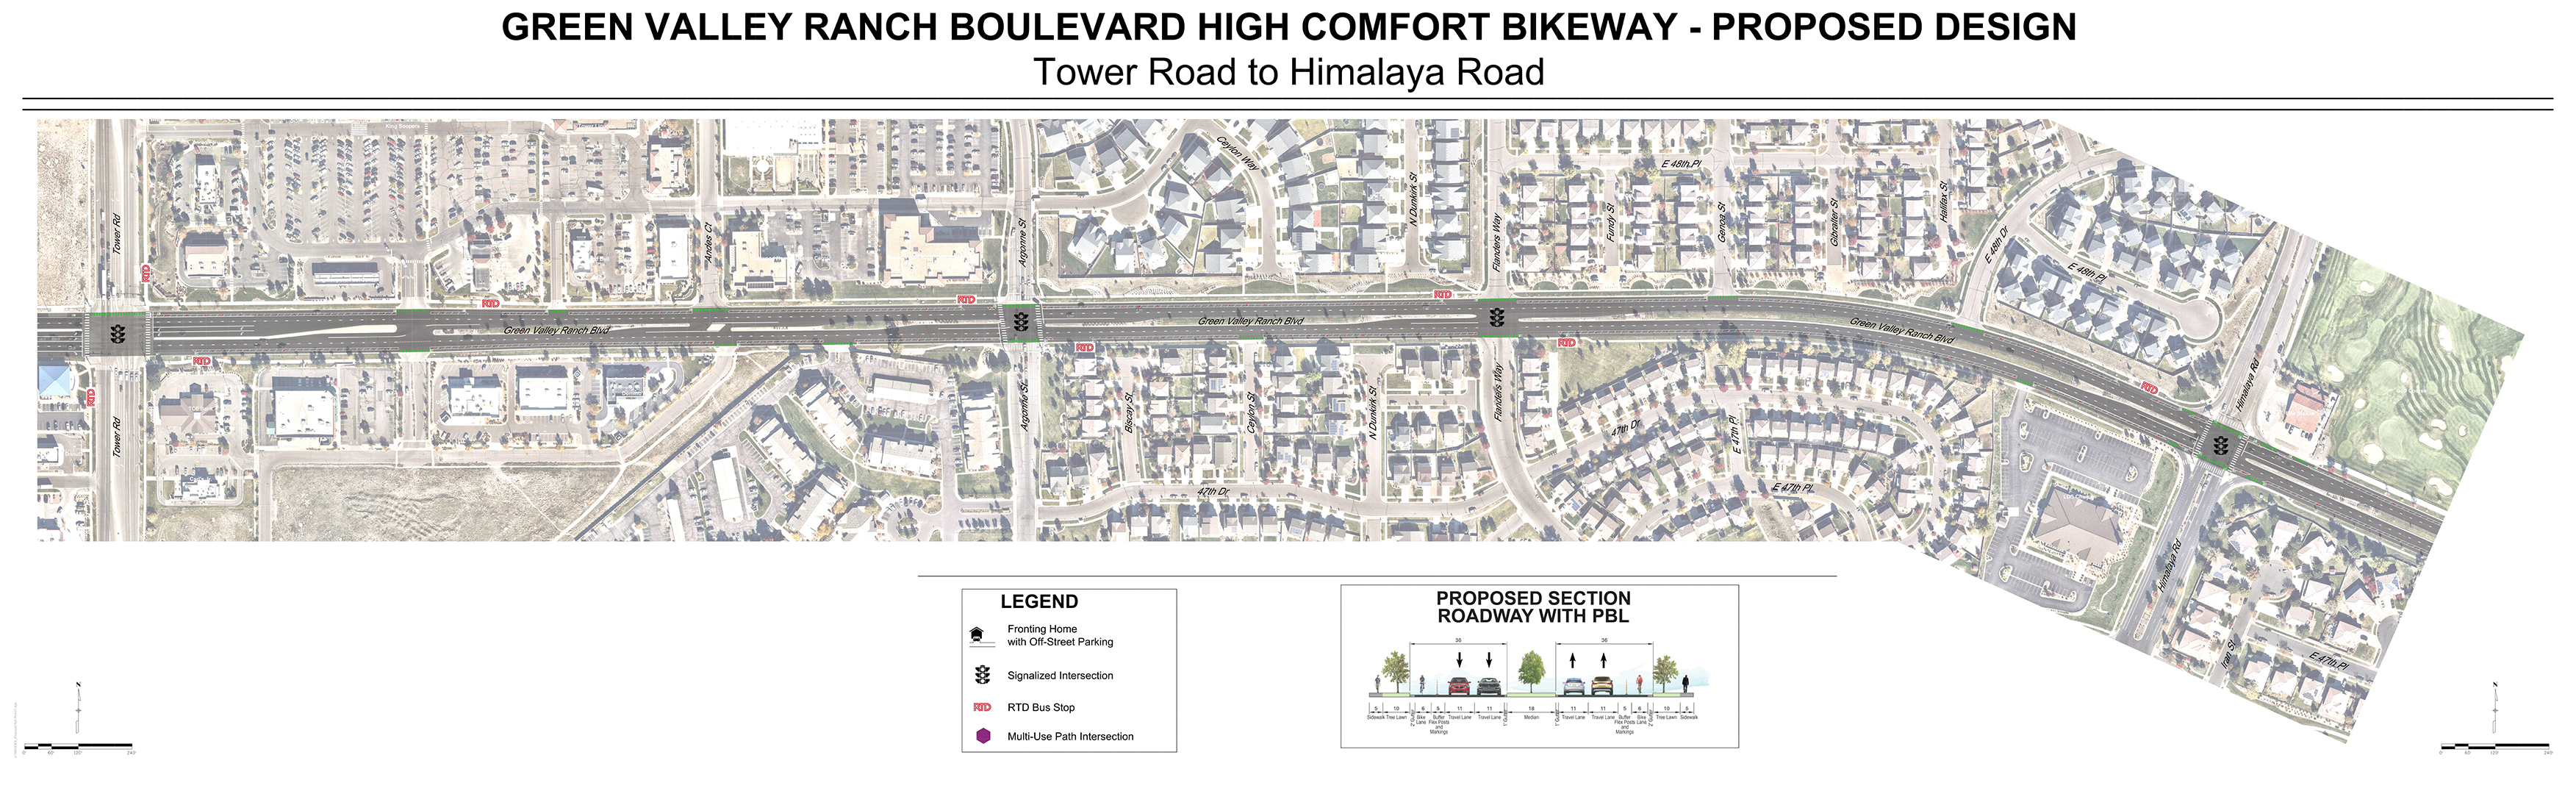 map of western half of proposed bikeway